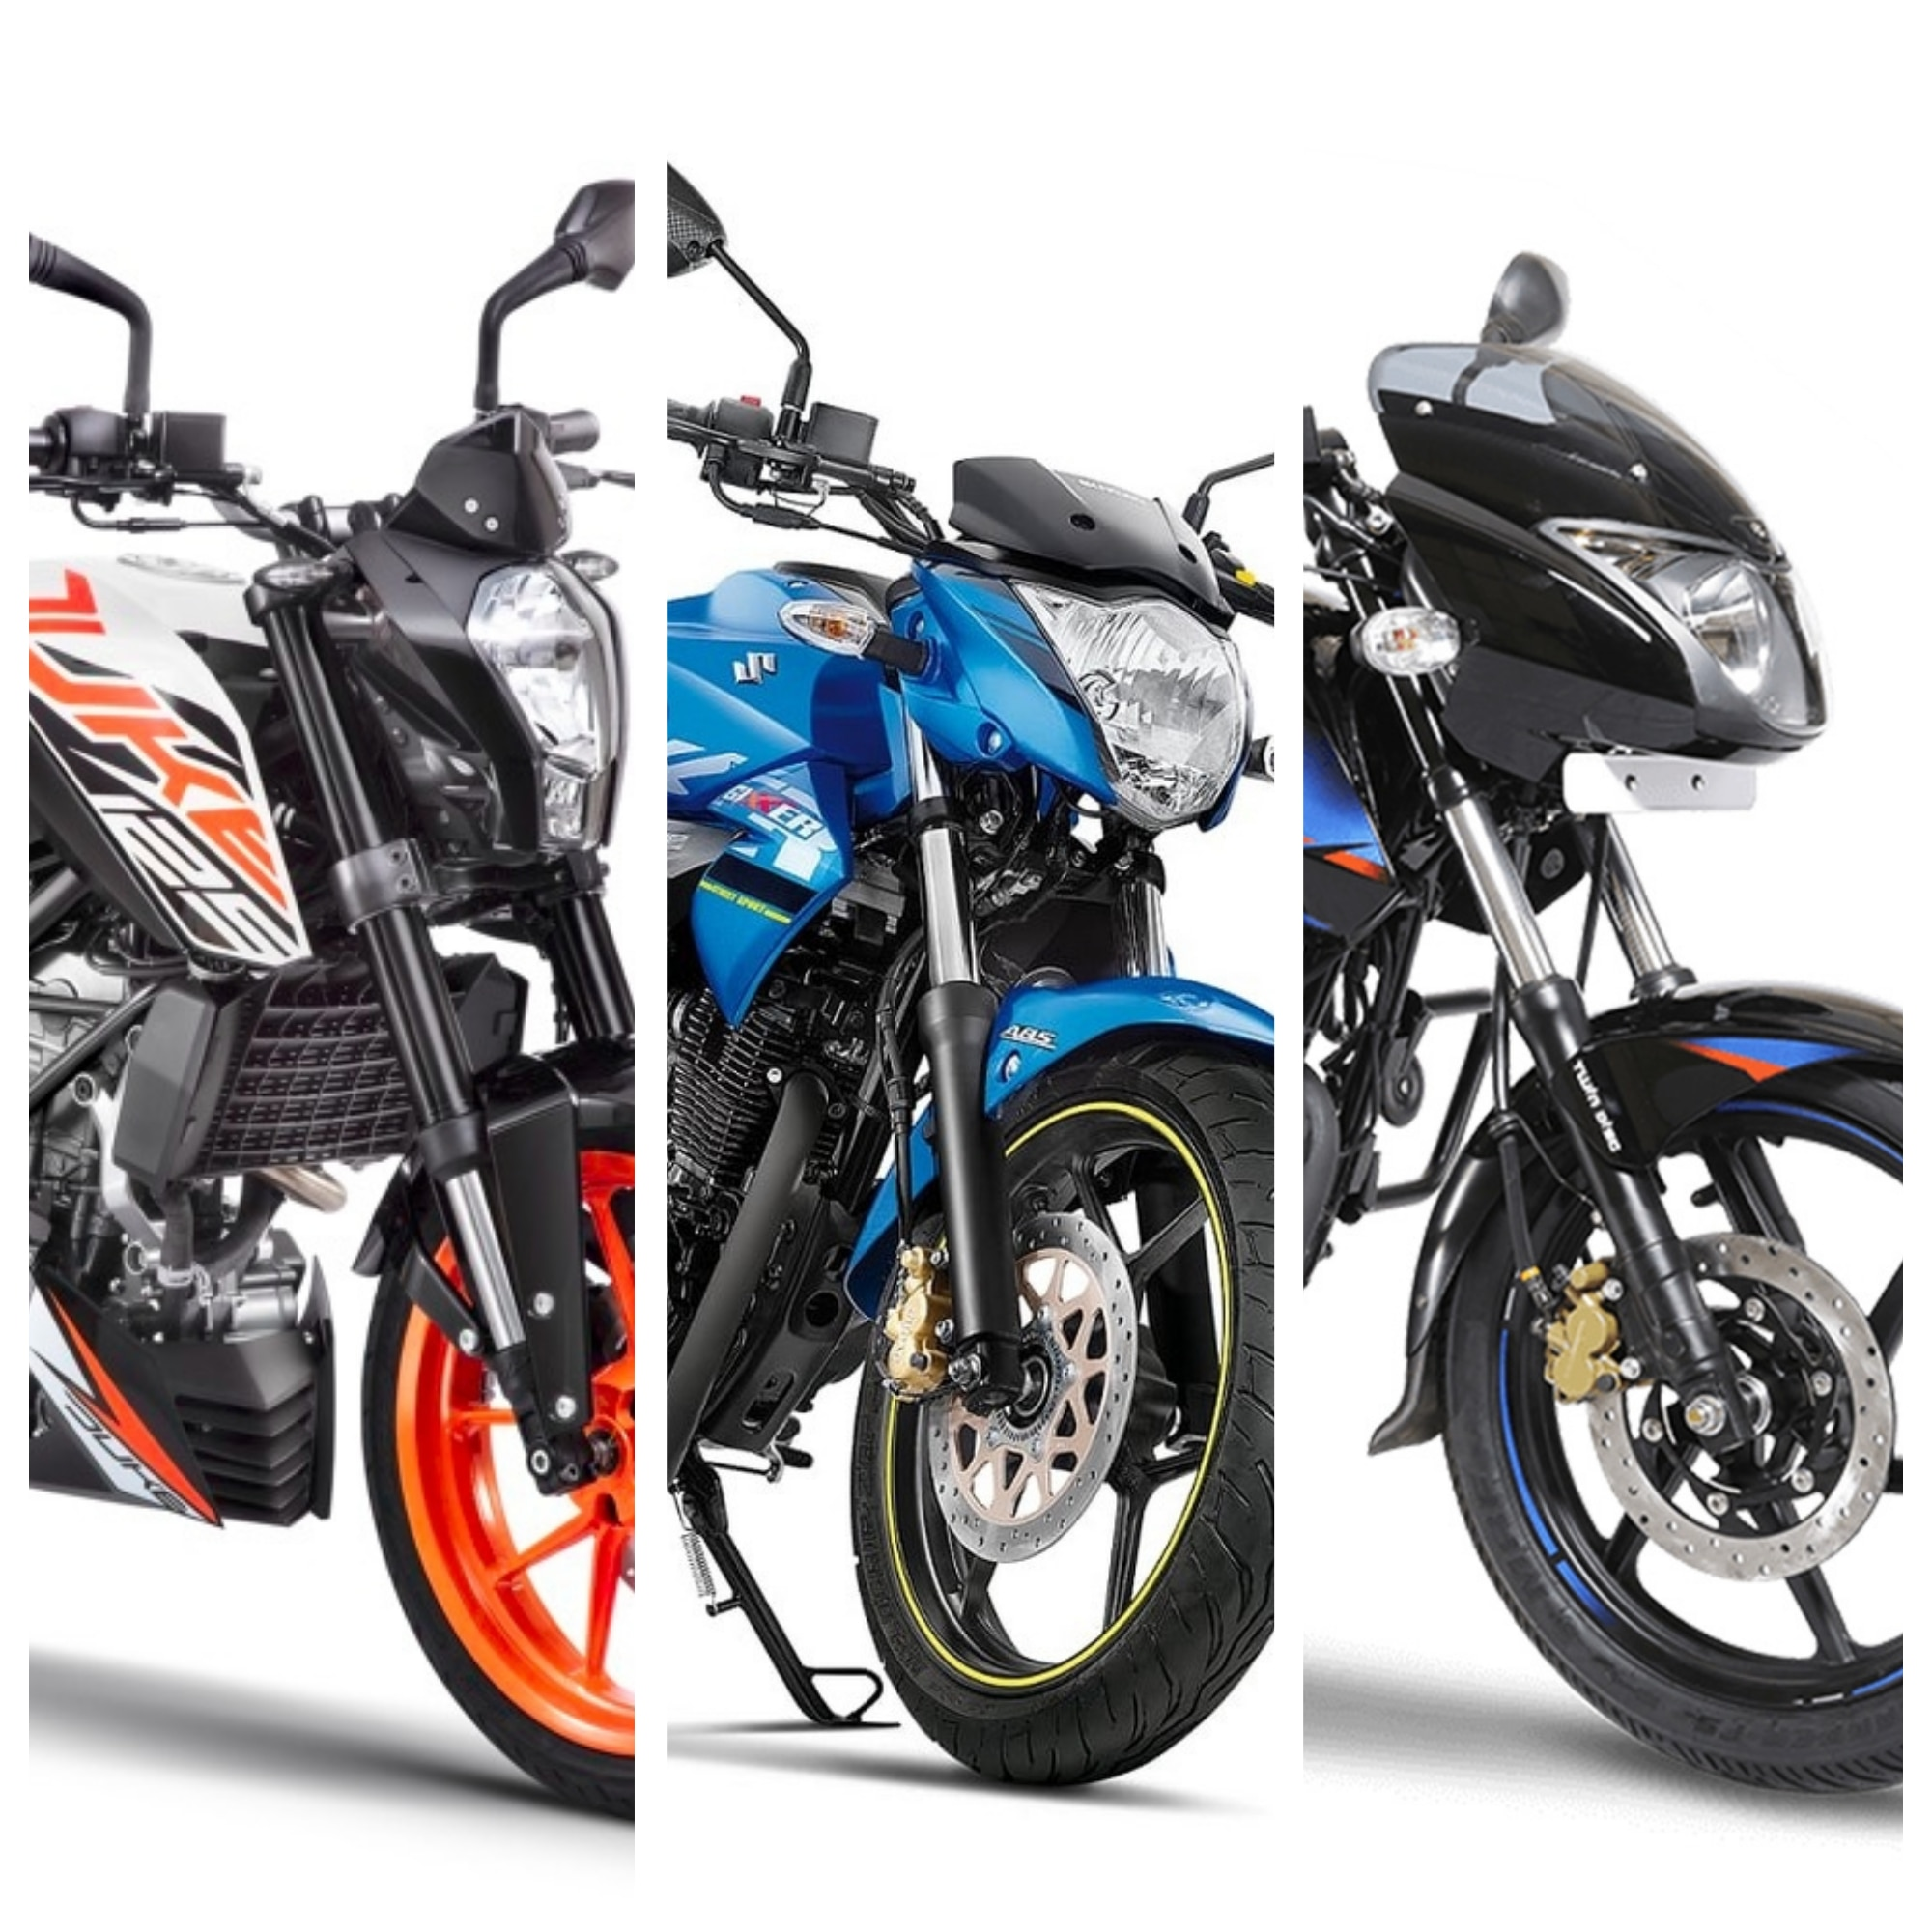 KTM 125 Duke vs Suzuki Gixxer vs Bajaj Pulsar 150: Spec Comparison